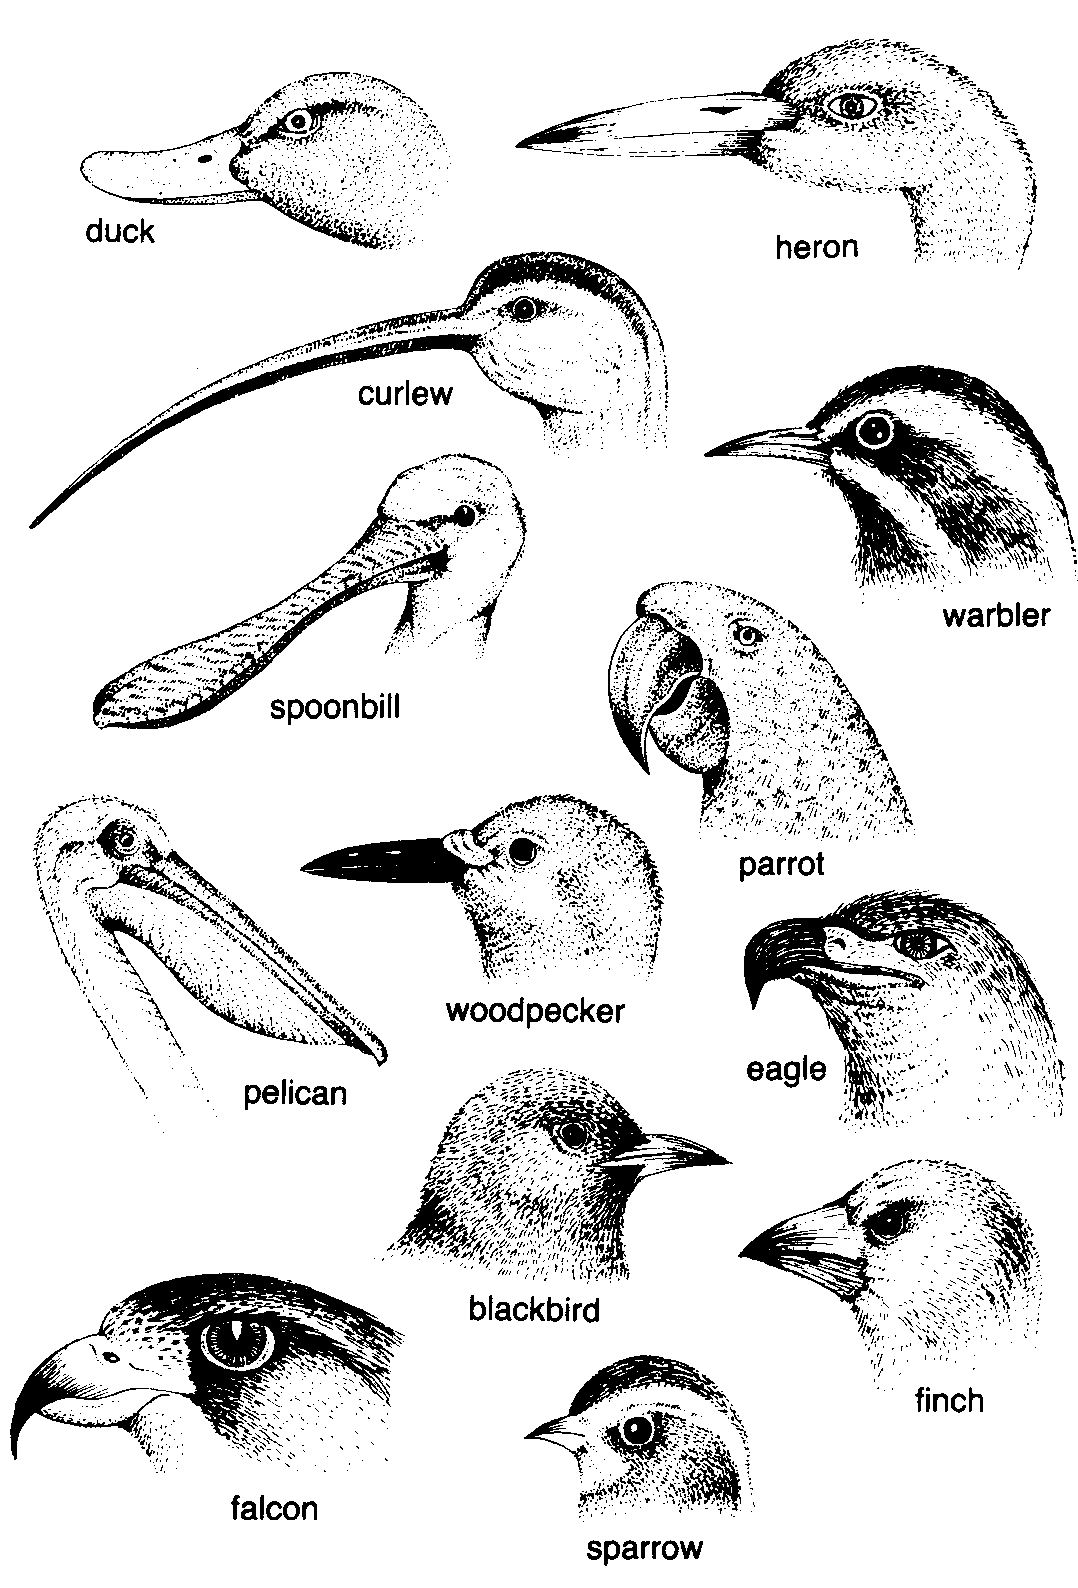 Saladogt Bird Adaptations